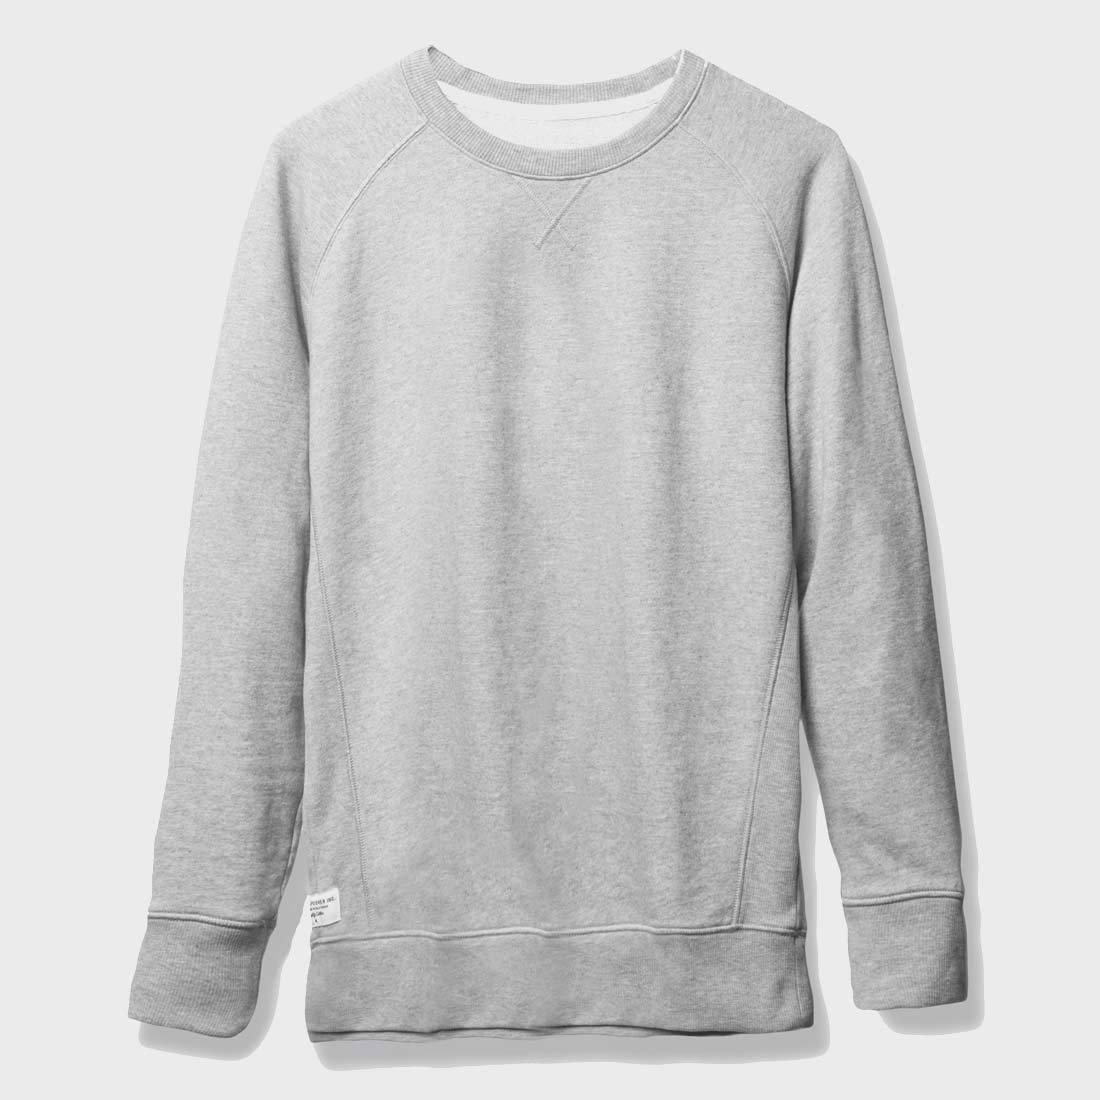 Richer Poorer Sweatshirt Women's Heather Grey